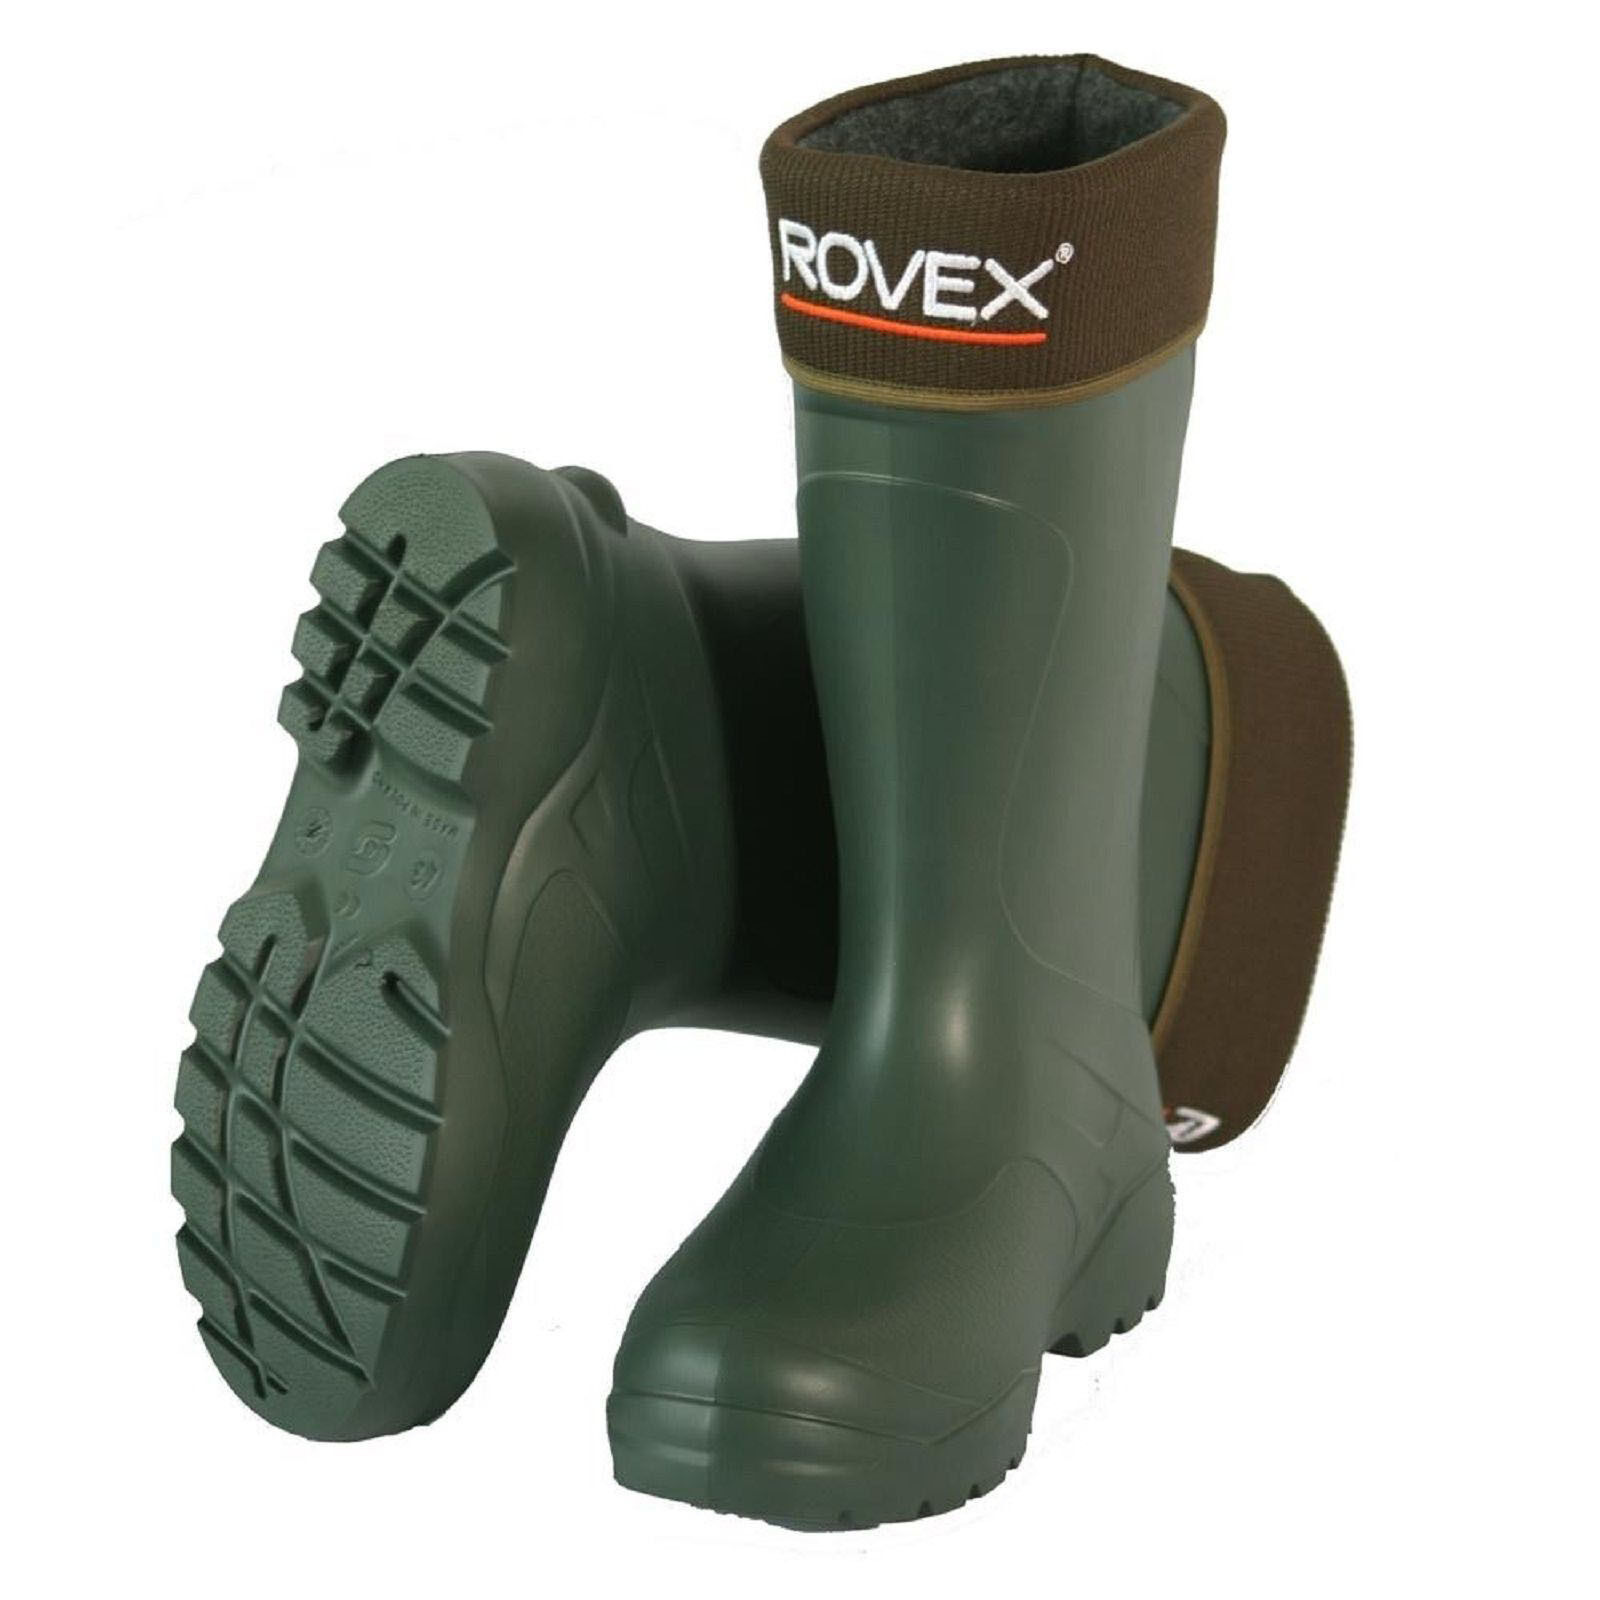 New 2017 Model Rovex Arctic Thermal Fishing Boots Ultra Lightweight